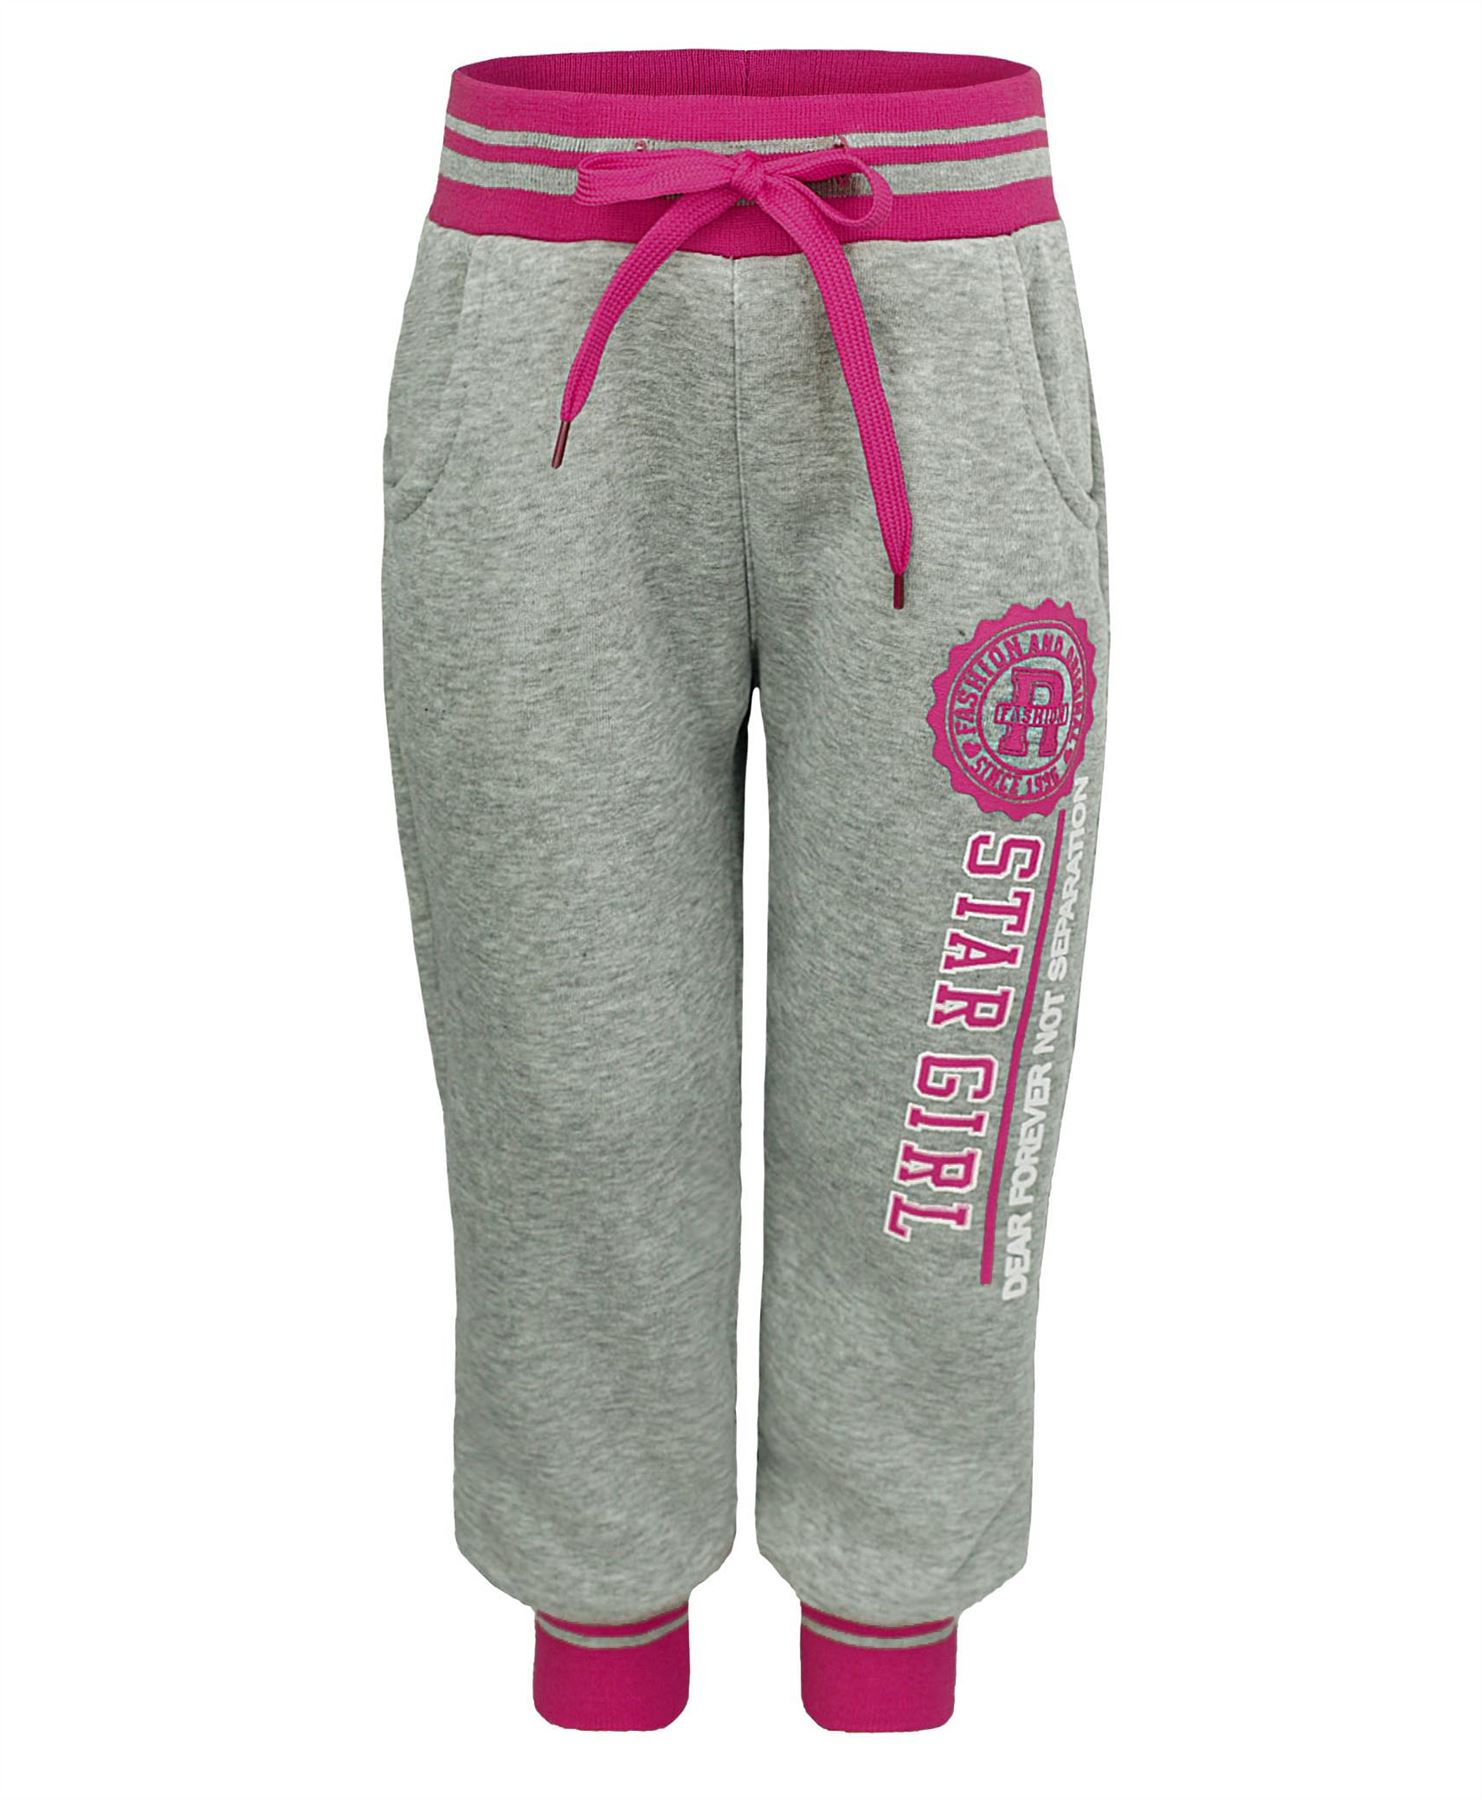 GOODBEE Kids Boys Cotton Casual Tracksuit Bottoms Sports Exercise Fitness Jogging Pants. by GOODBEE. $ - $ $ 5 $ 6 5 out of 5 stars 1. Product Features Casual, super comfortable, tracksuit bottoms are great to wear indoors Fixmatti Women 2PC Hooded Front Pocket Sweater Sweatpants Sport Tracksuit Jumpsuit.